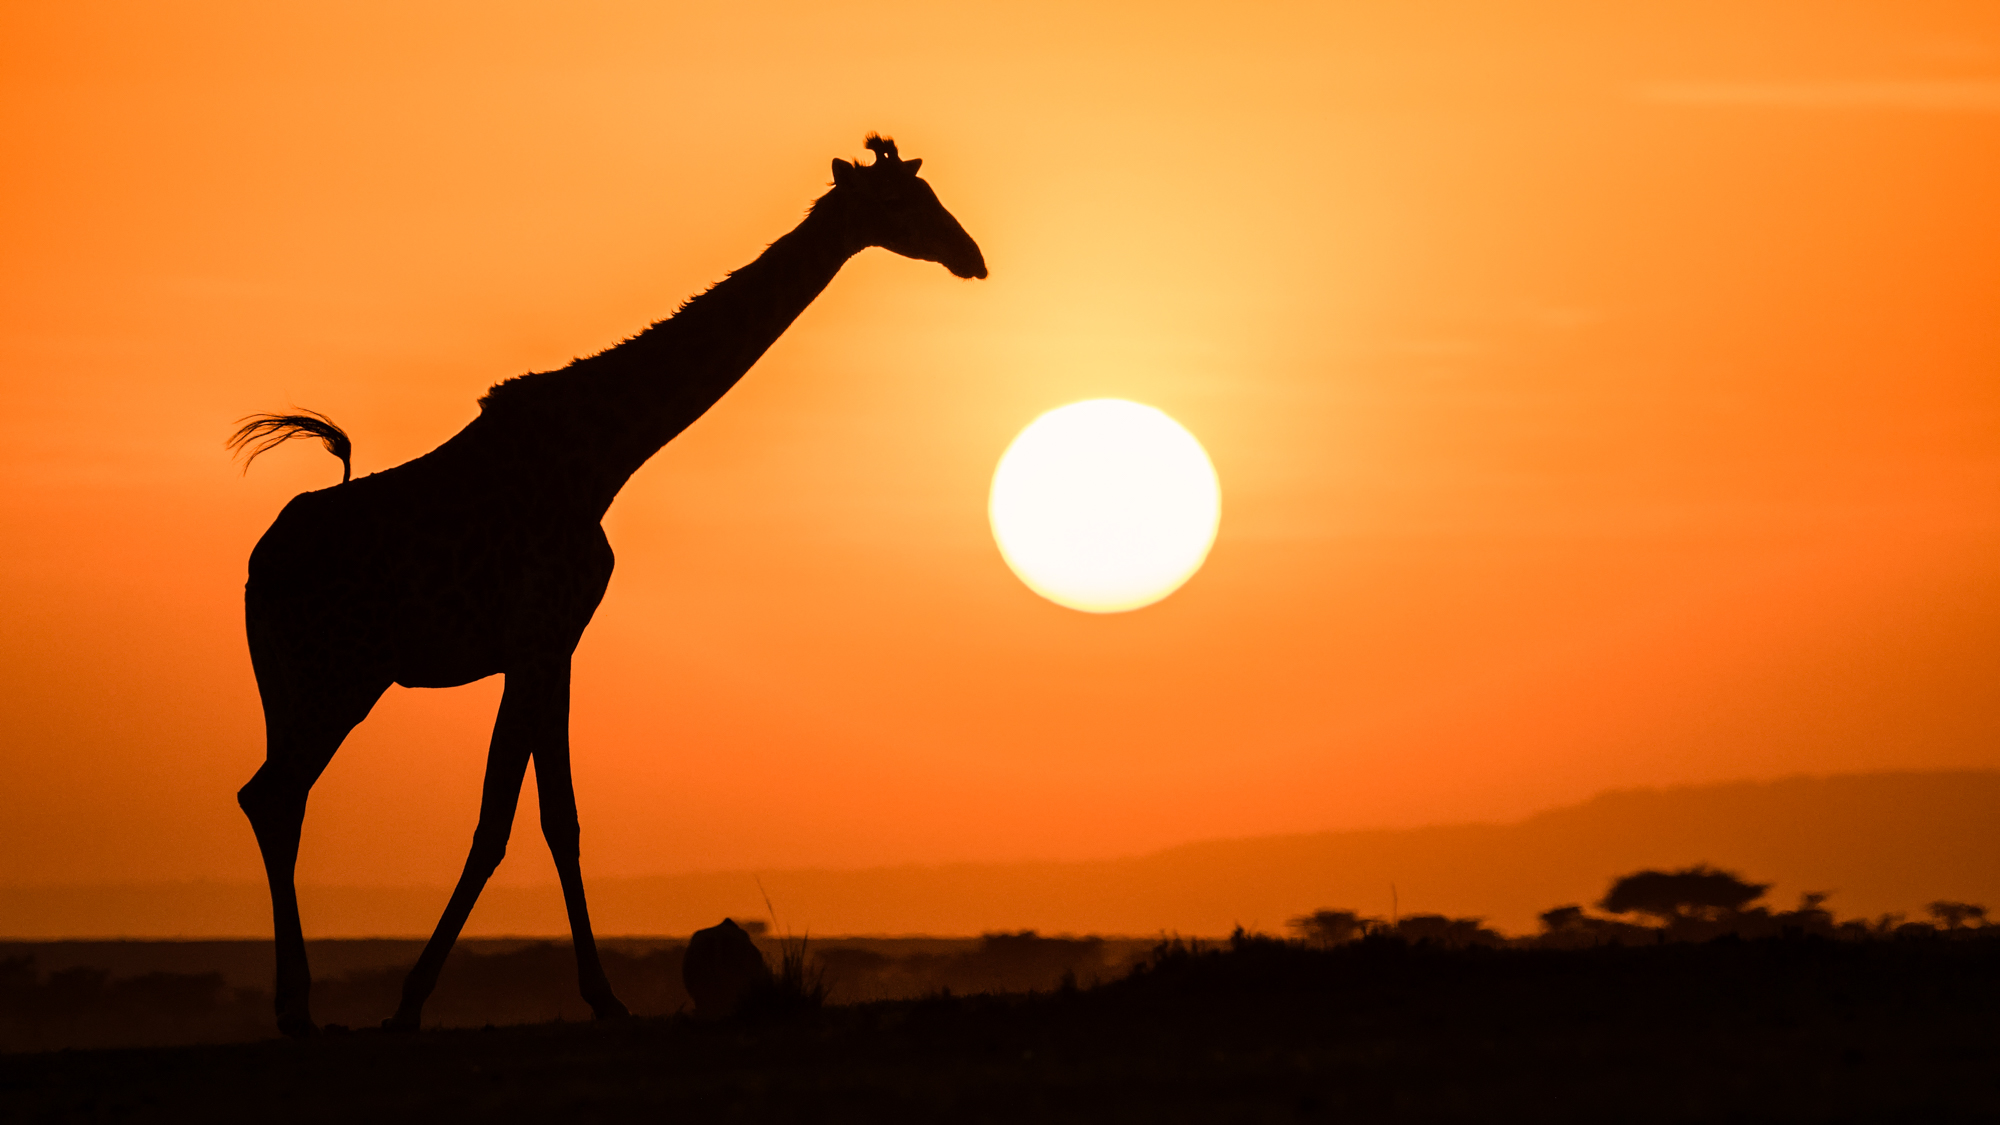 A giraffe silhouetted by the setting sun